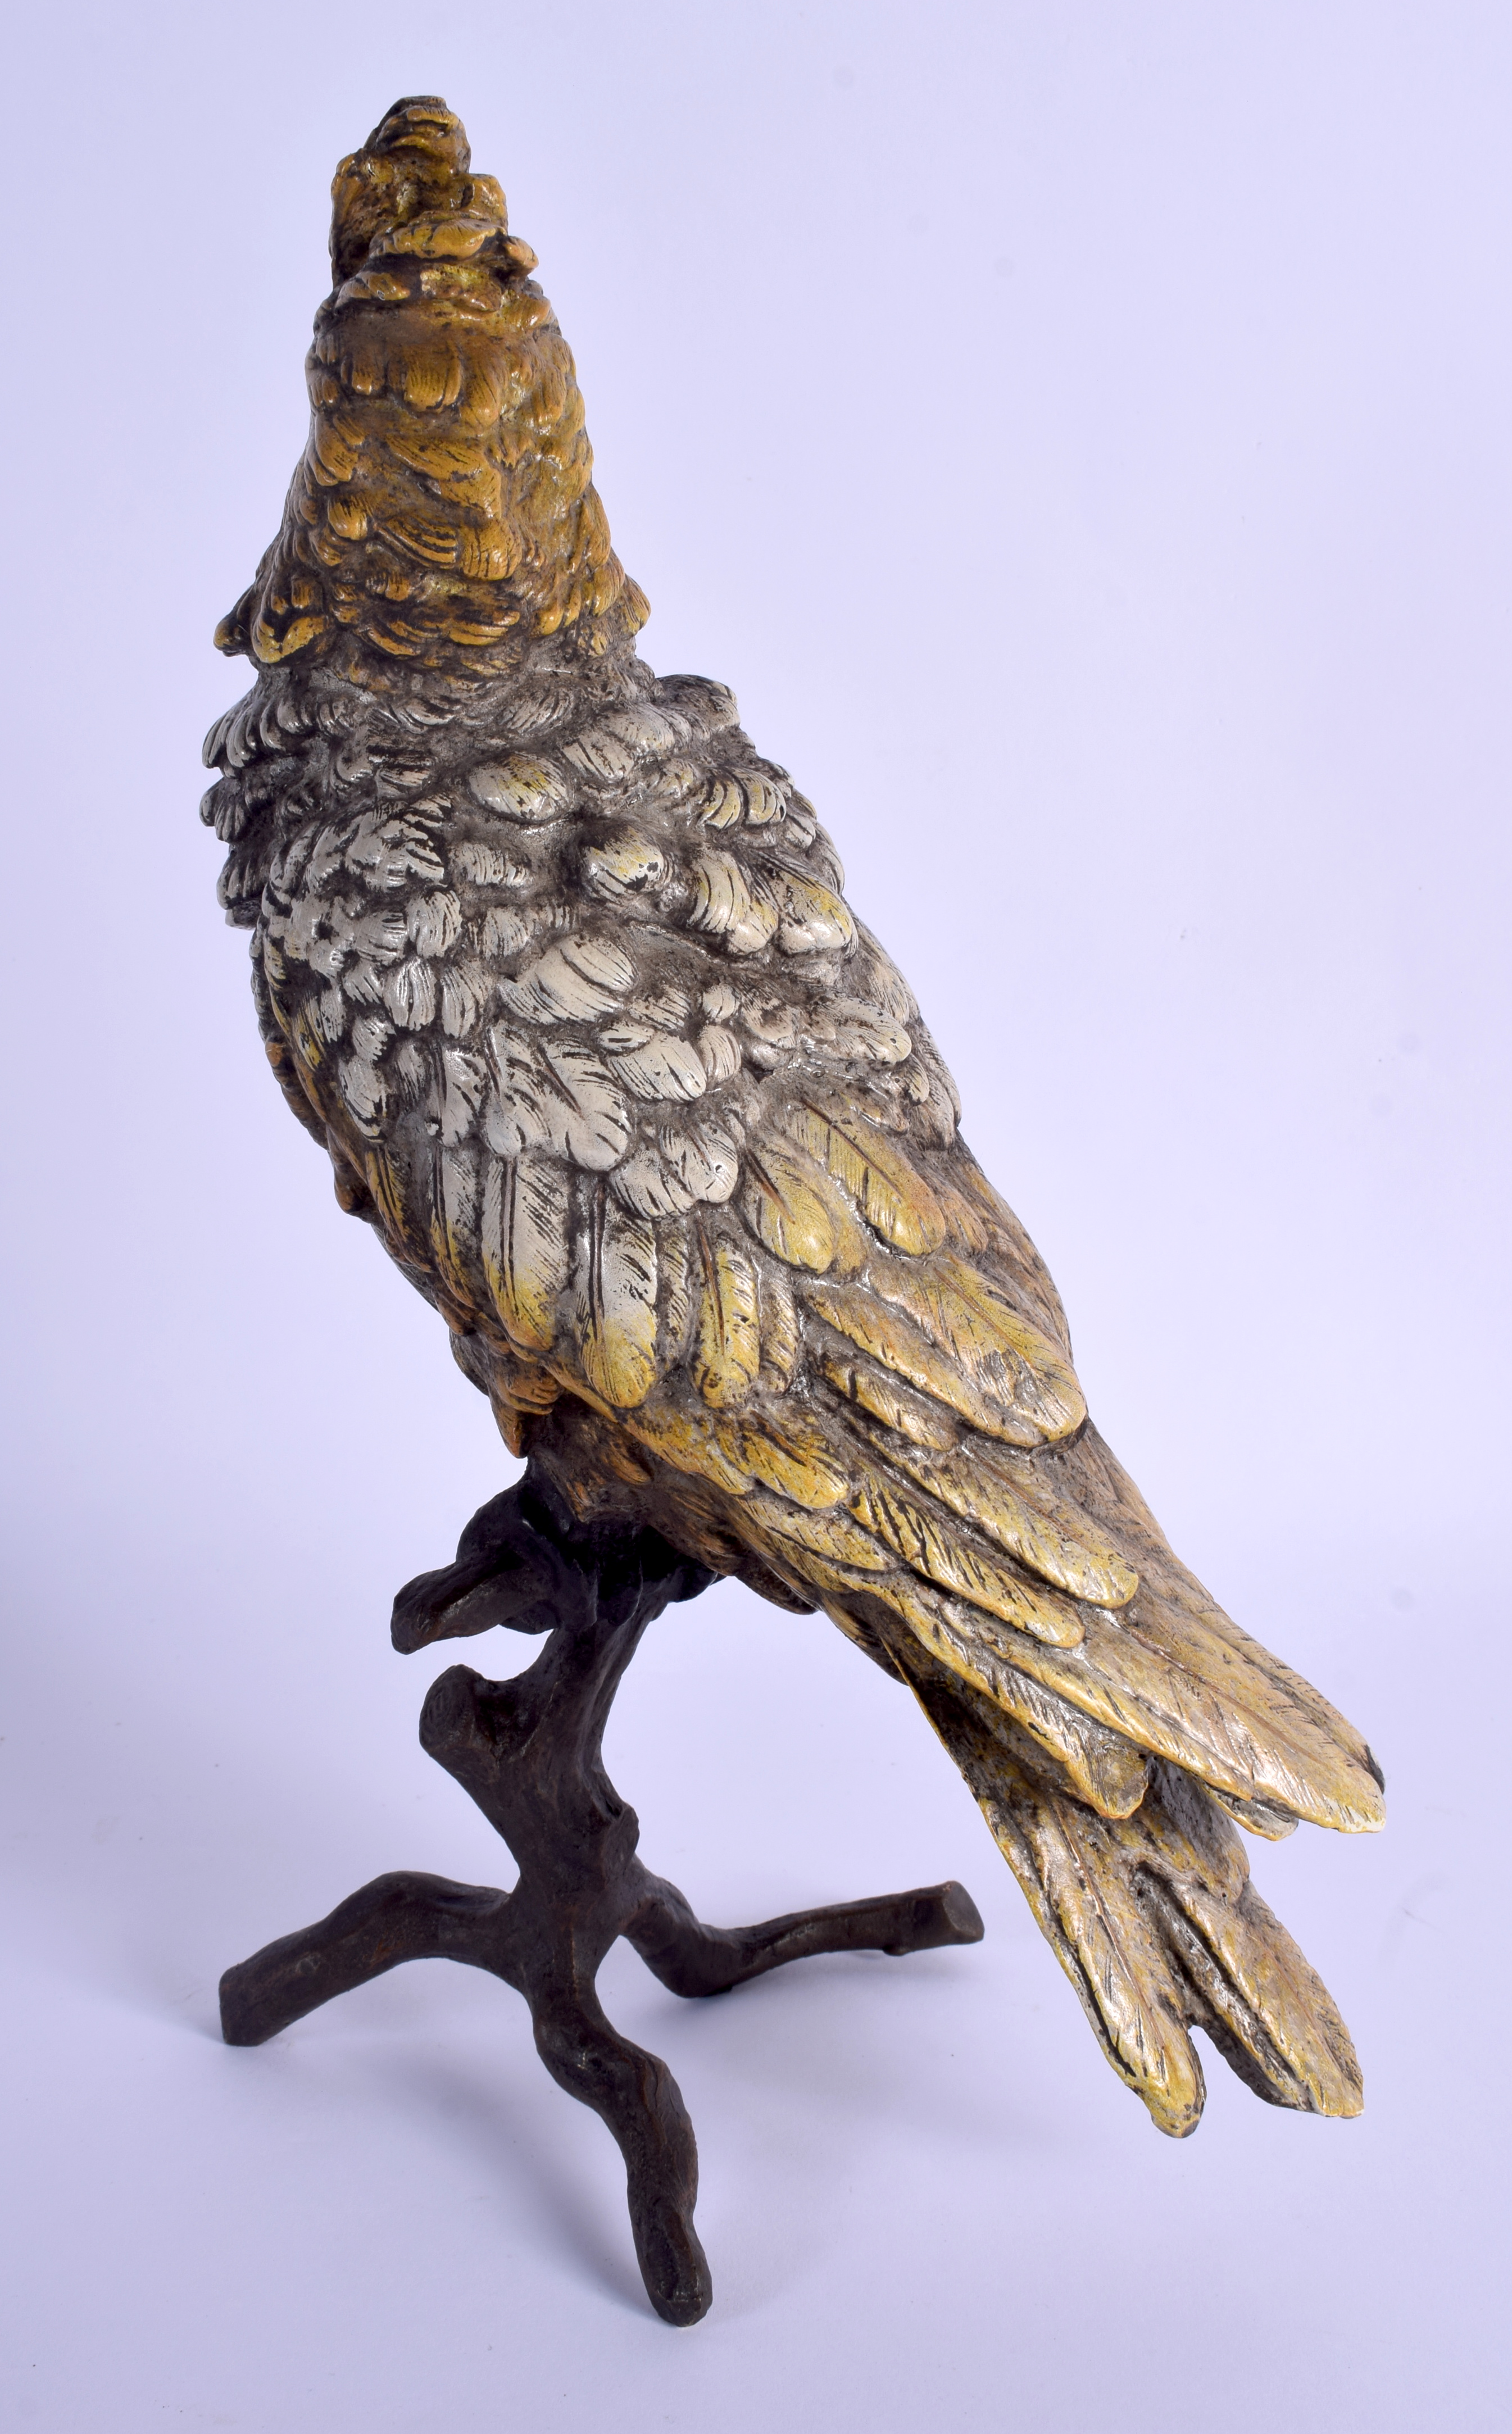 A LARGE CONTEMPORARY COLD PAINTED BRONZE BIRD upon a naturalistic base. 31 cm high. - Image 2 of 4